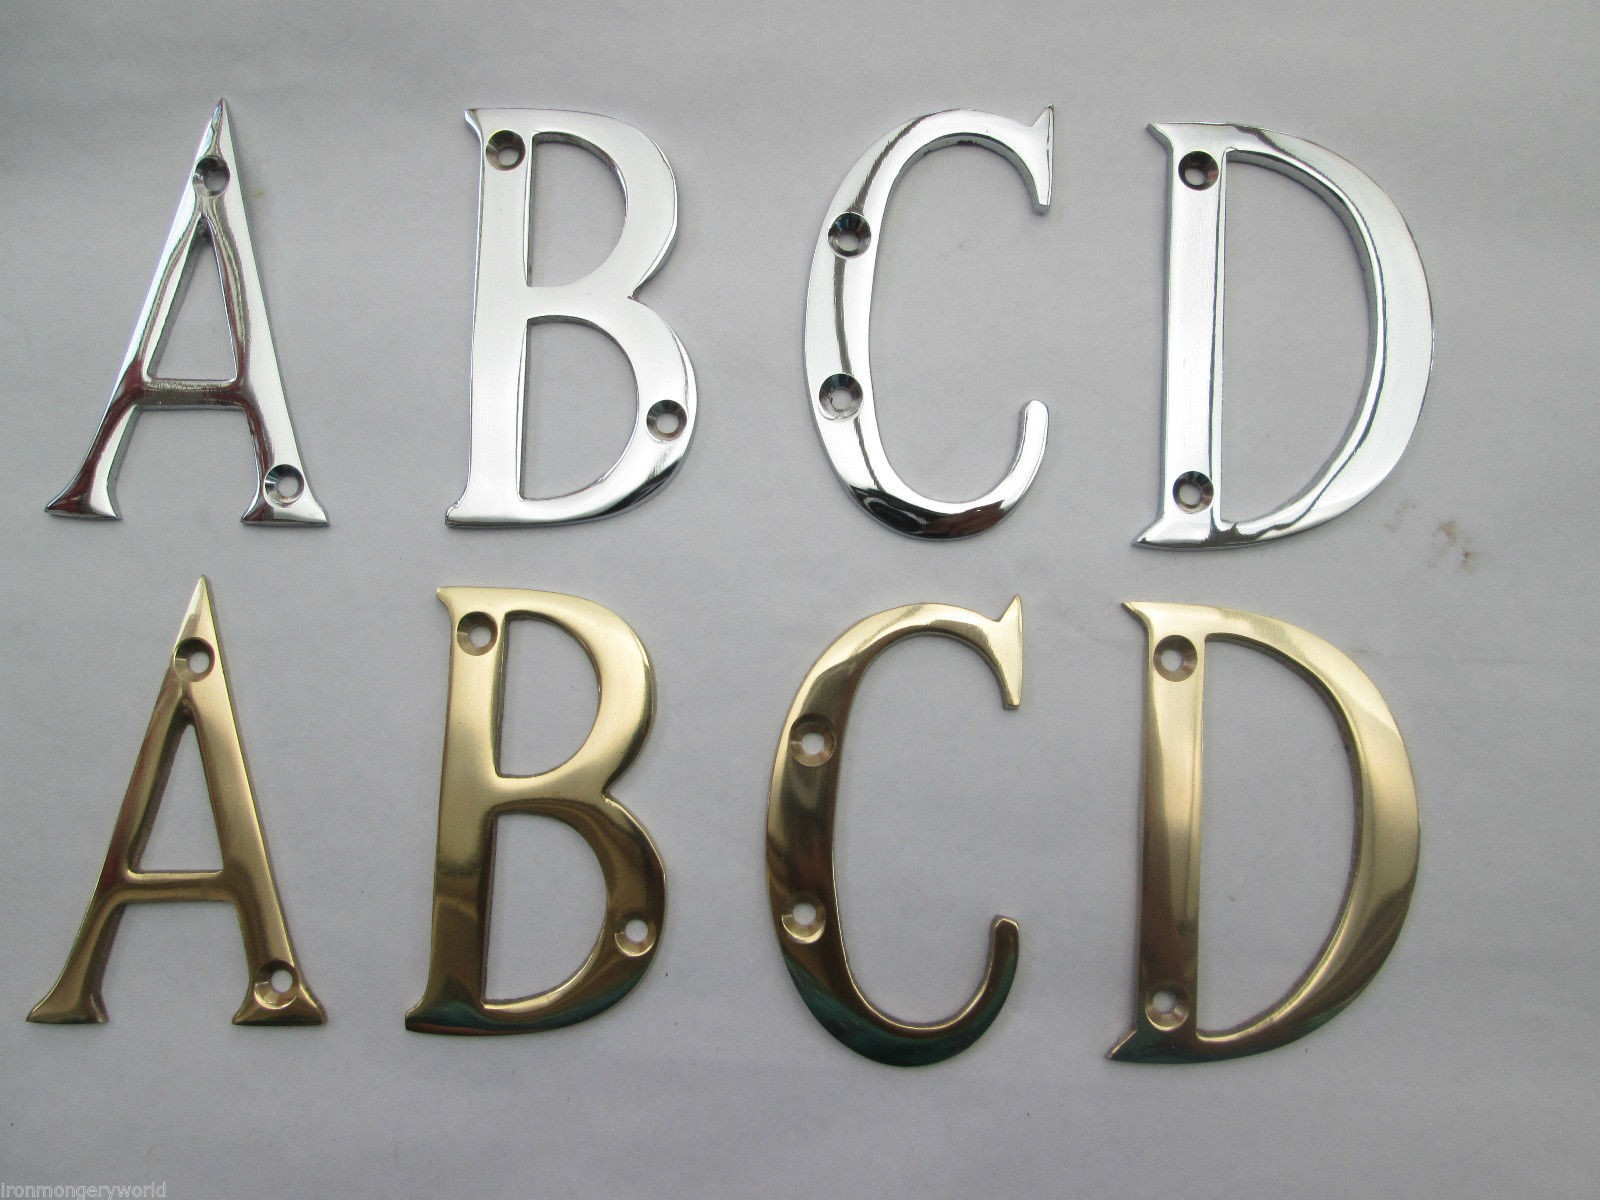 3 Quot Brass Numbers Amp Letters Ironmongery World